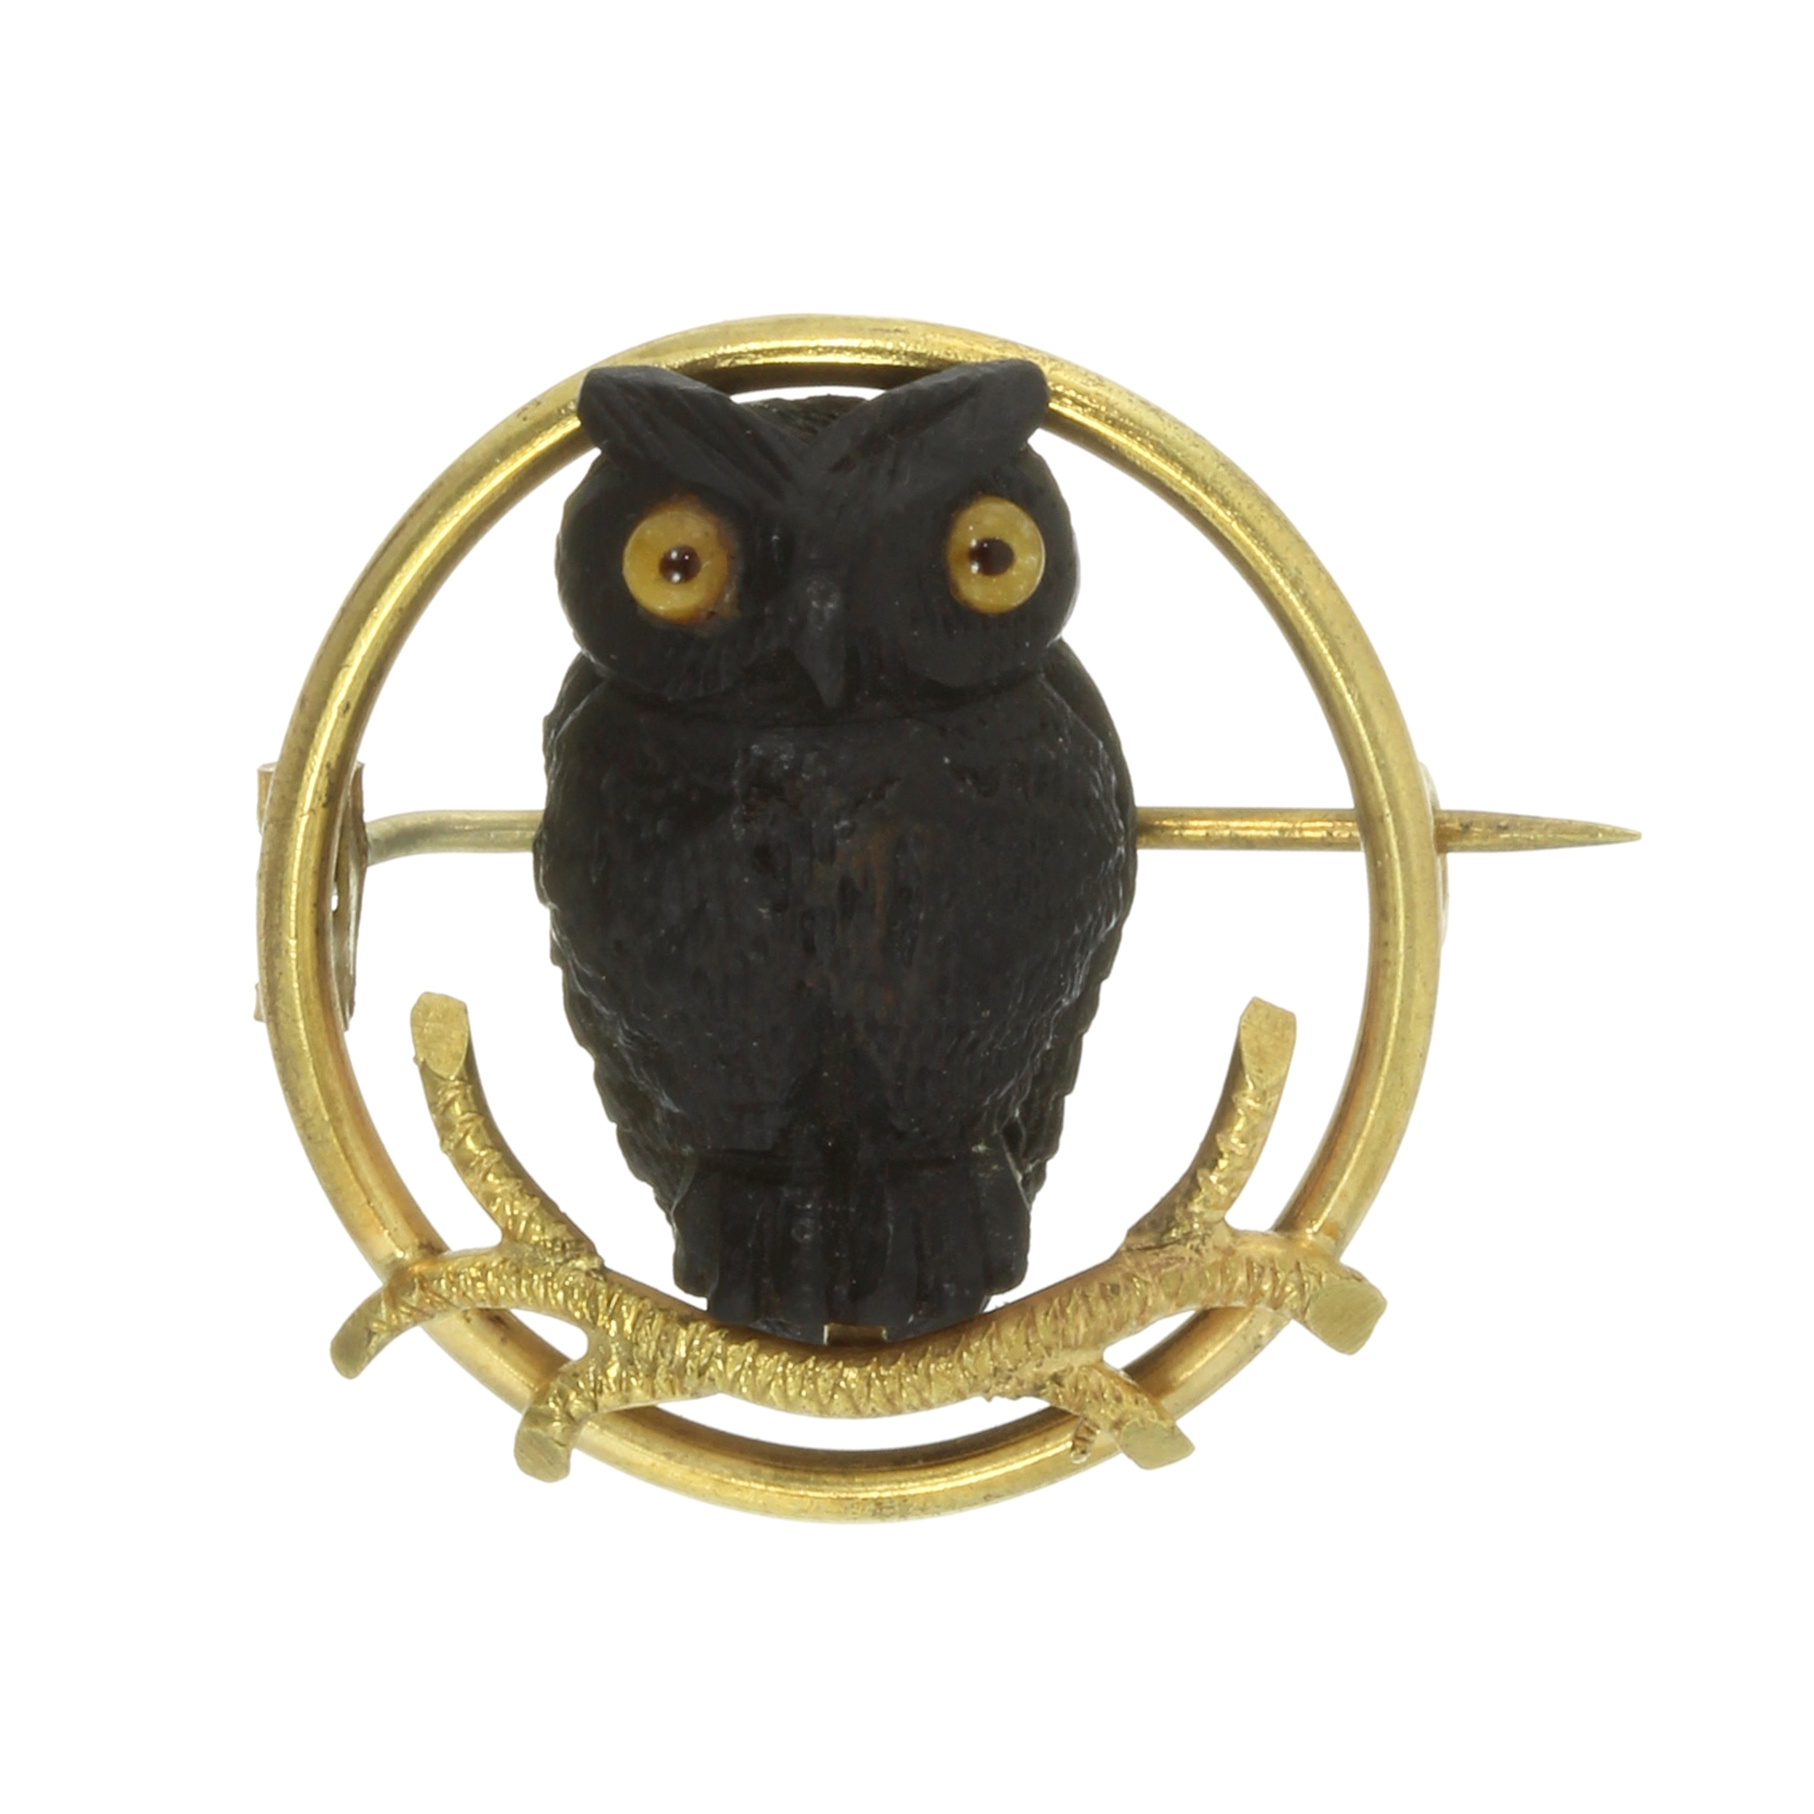 Los 53 - A WOODEN OWL BROOCH, EARLY 20TH CENTURY designed as a carved wooden owl with glass eyes, seated on a